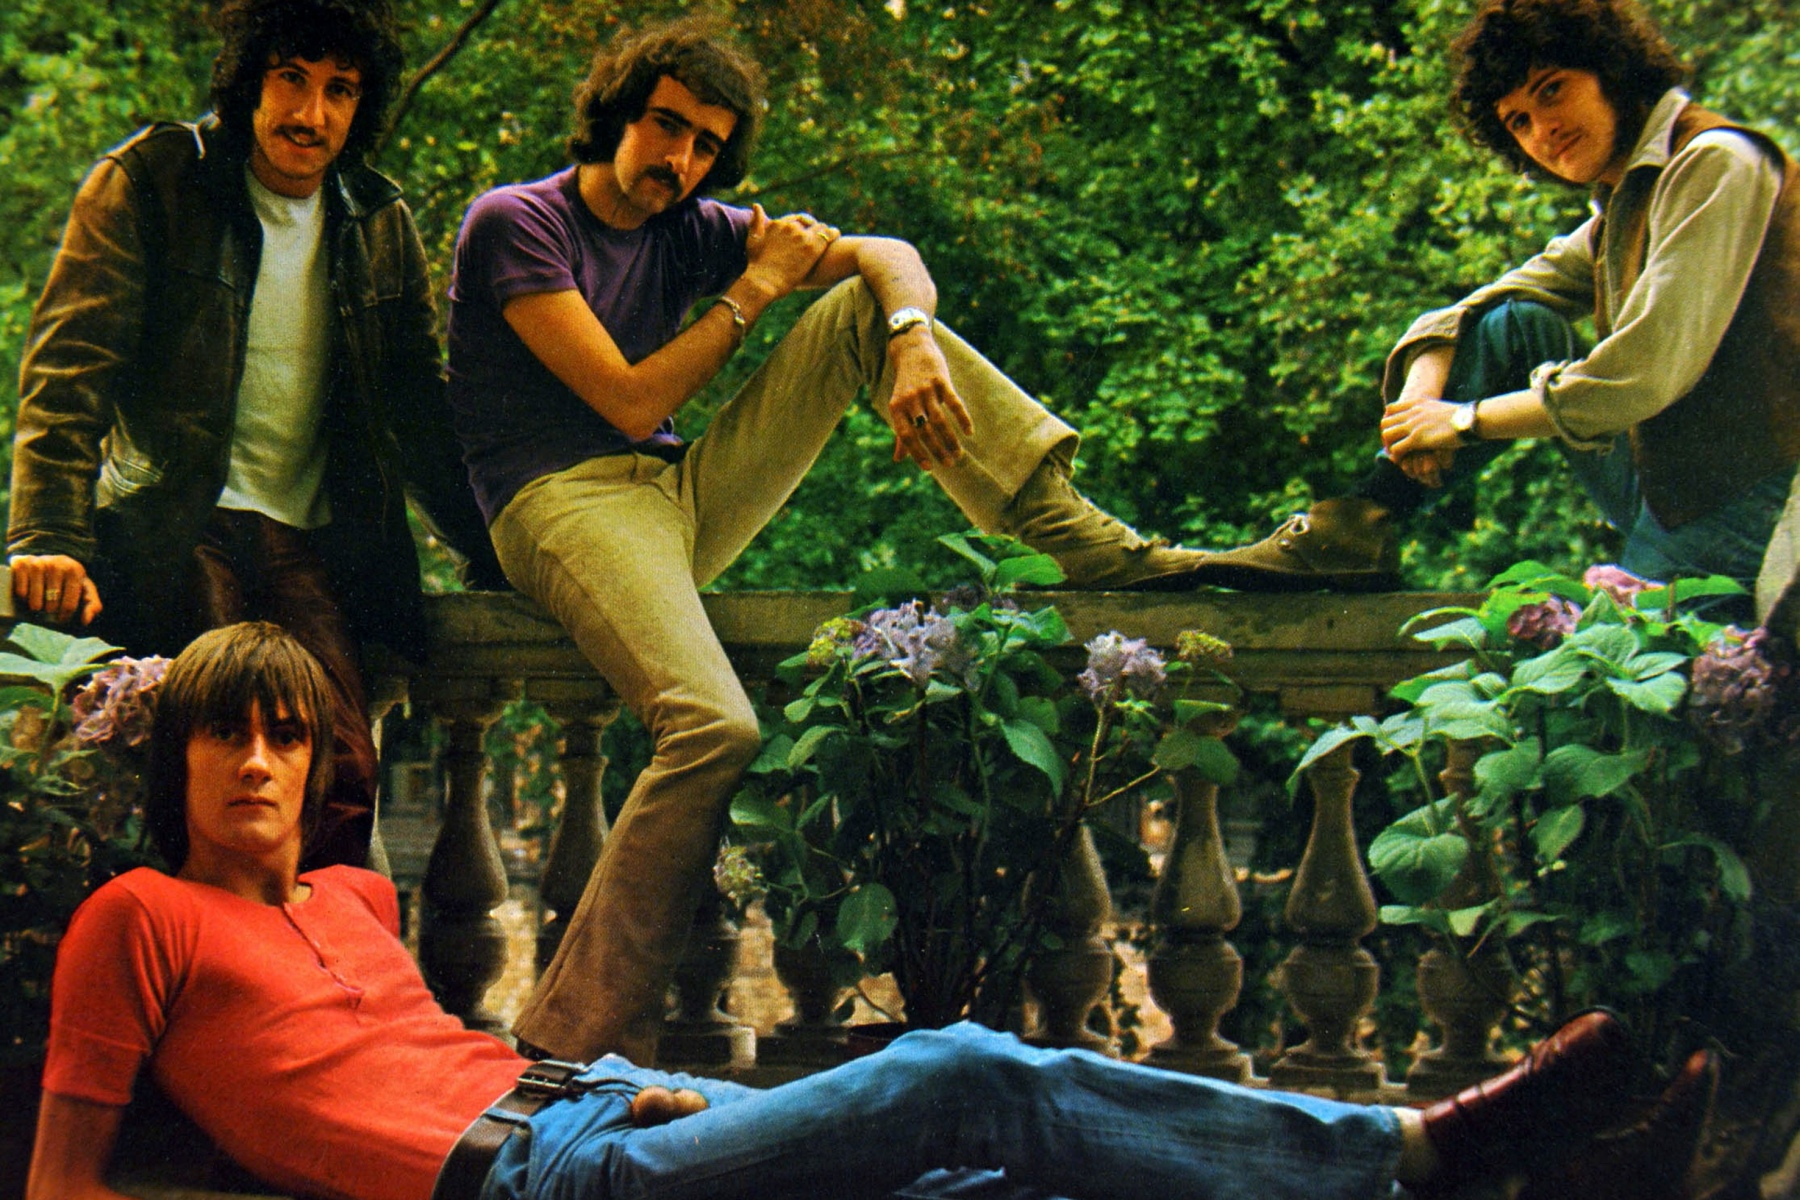 Photo of FLEETWOOD MAC; Grou portrait - Peter Green John McVie and Jeremy Spencer, Mick Fleetwood, front (Photo by GAB Archive/Redferns)